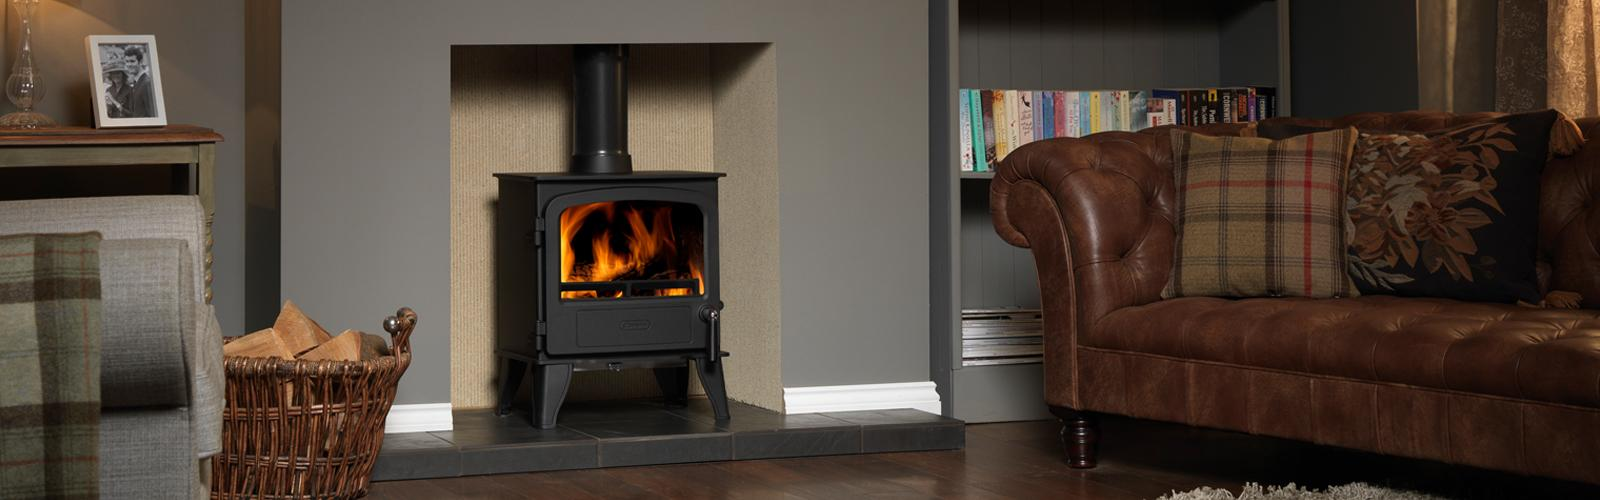 Multi Fuel Fires And Stoves From Dimplex